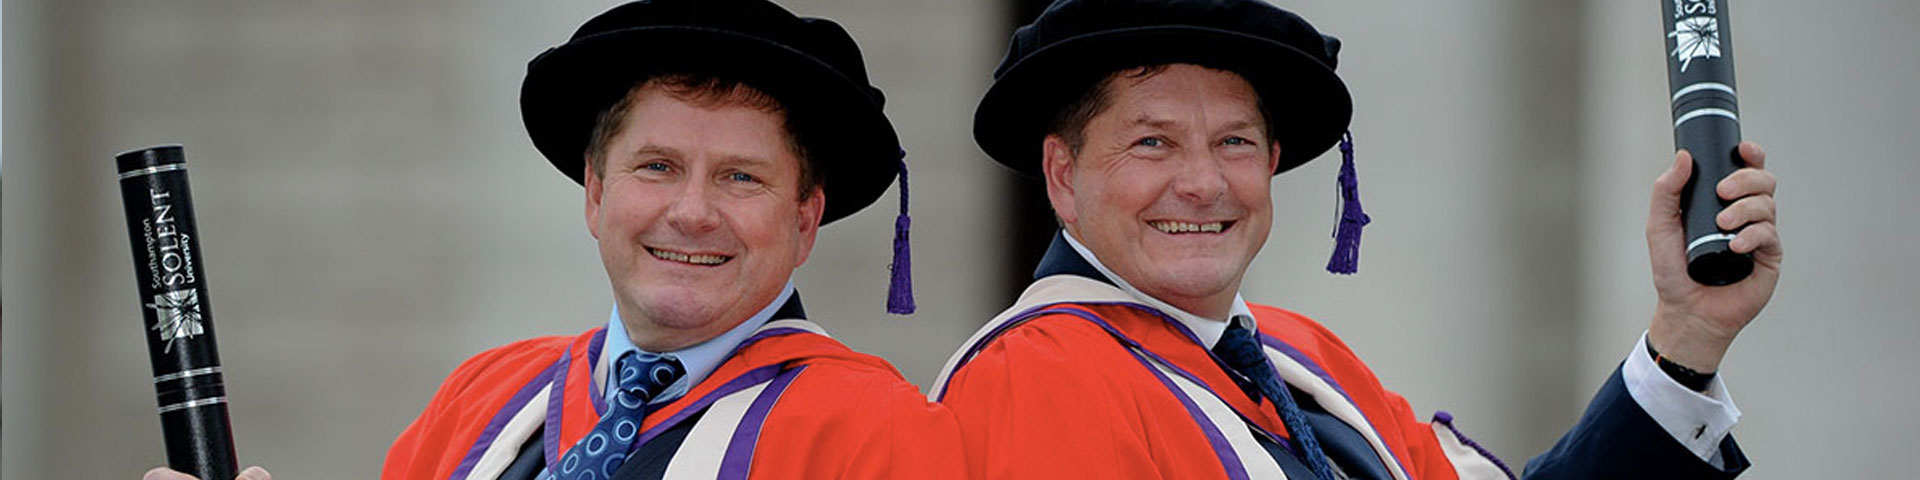 Pete and Pip Tyler with their honorary degrees from Solent University